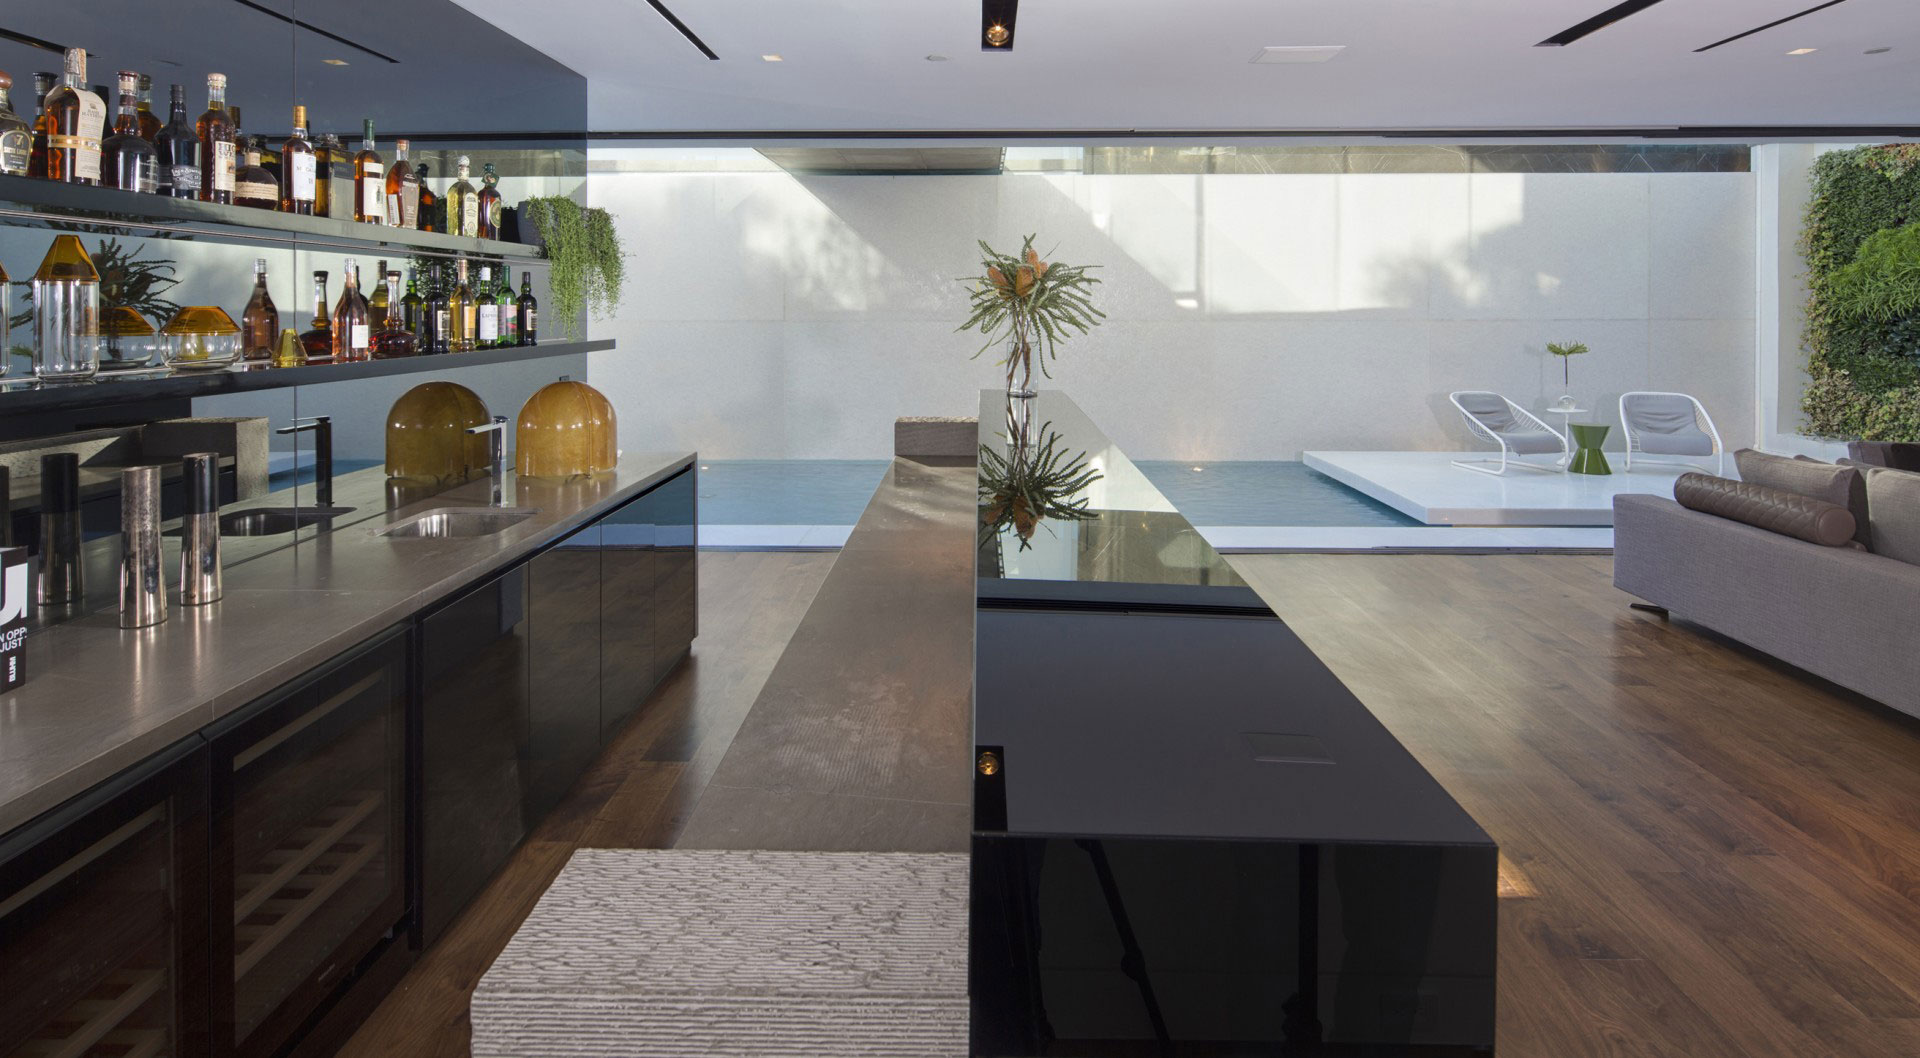 Home Bar Design Ideas - A dramatic glass home overlooking the l a basin